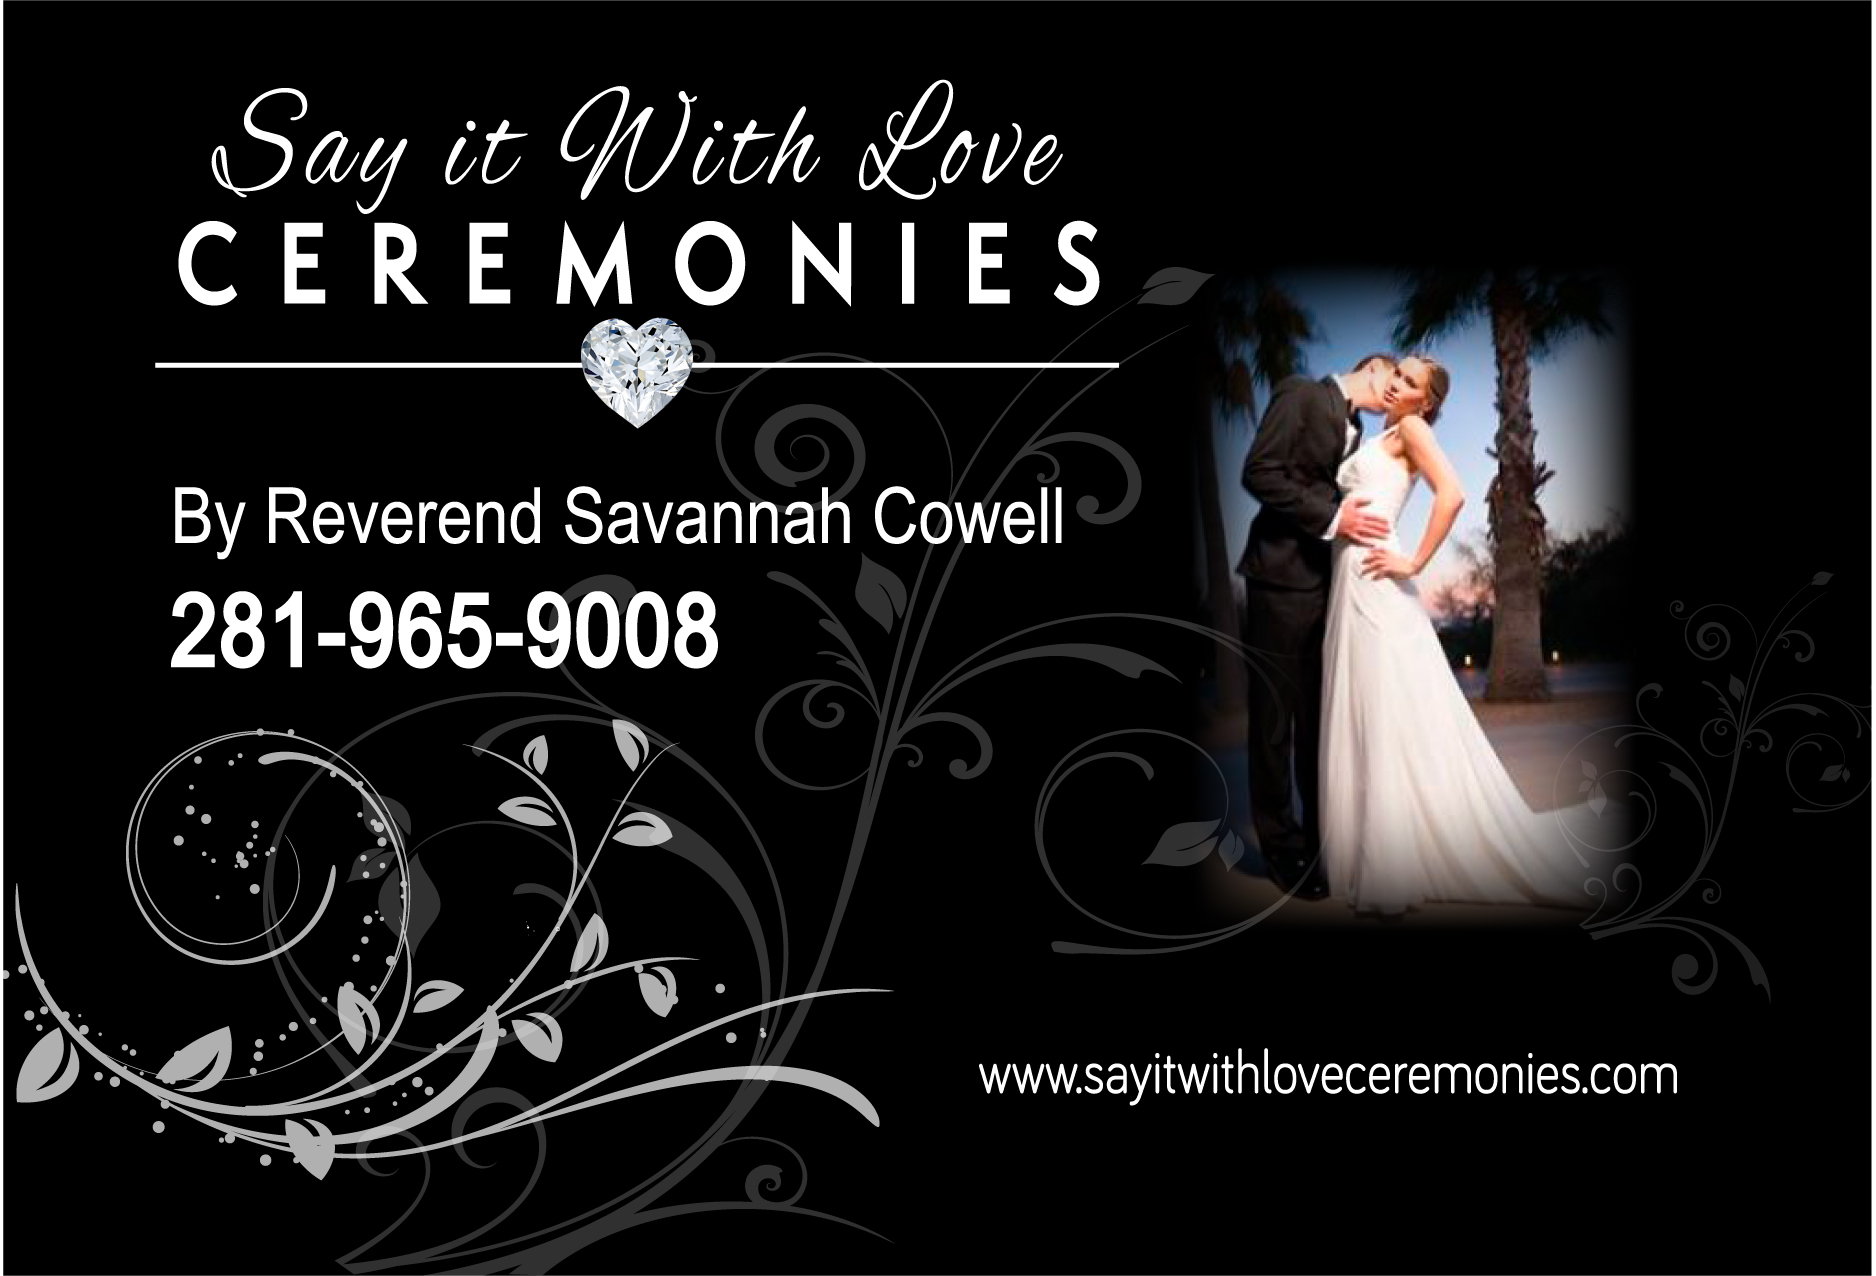 Post card for bridal show with contact information